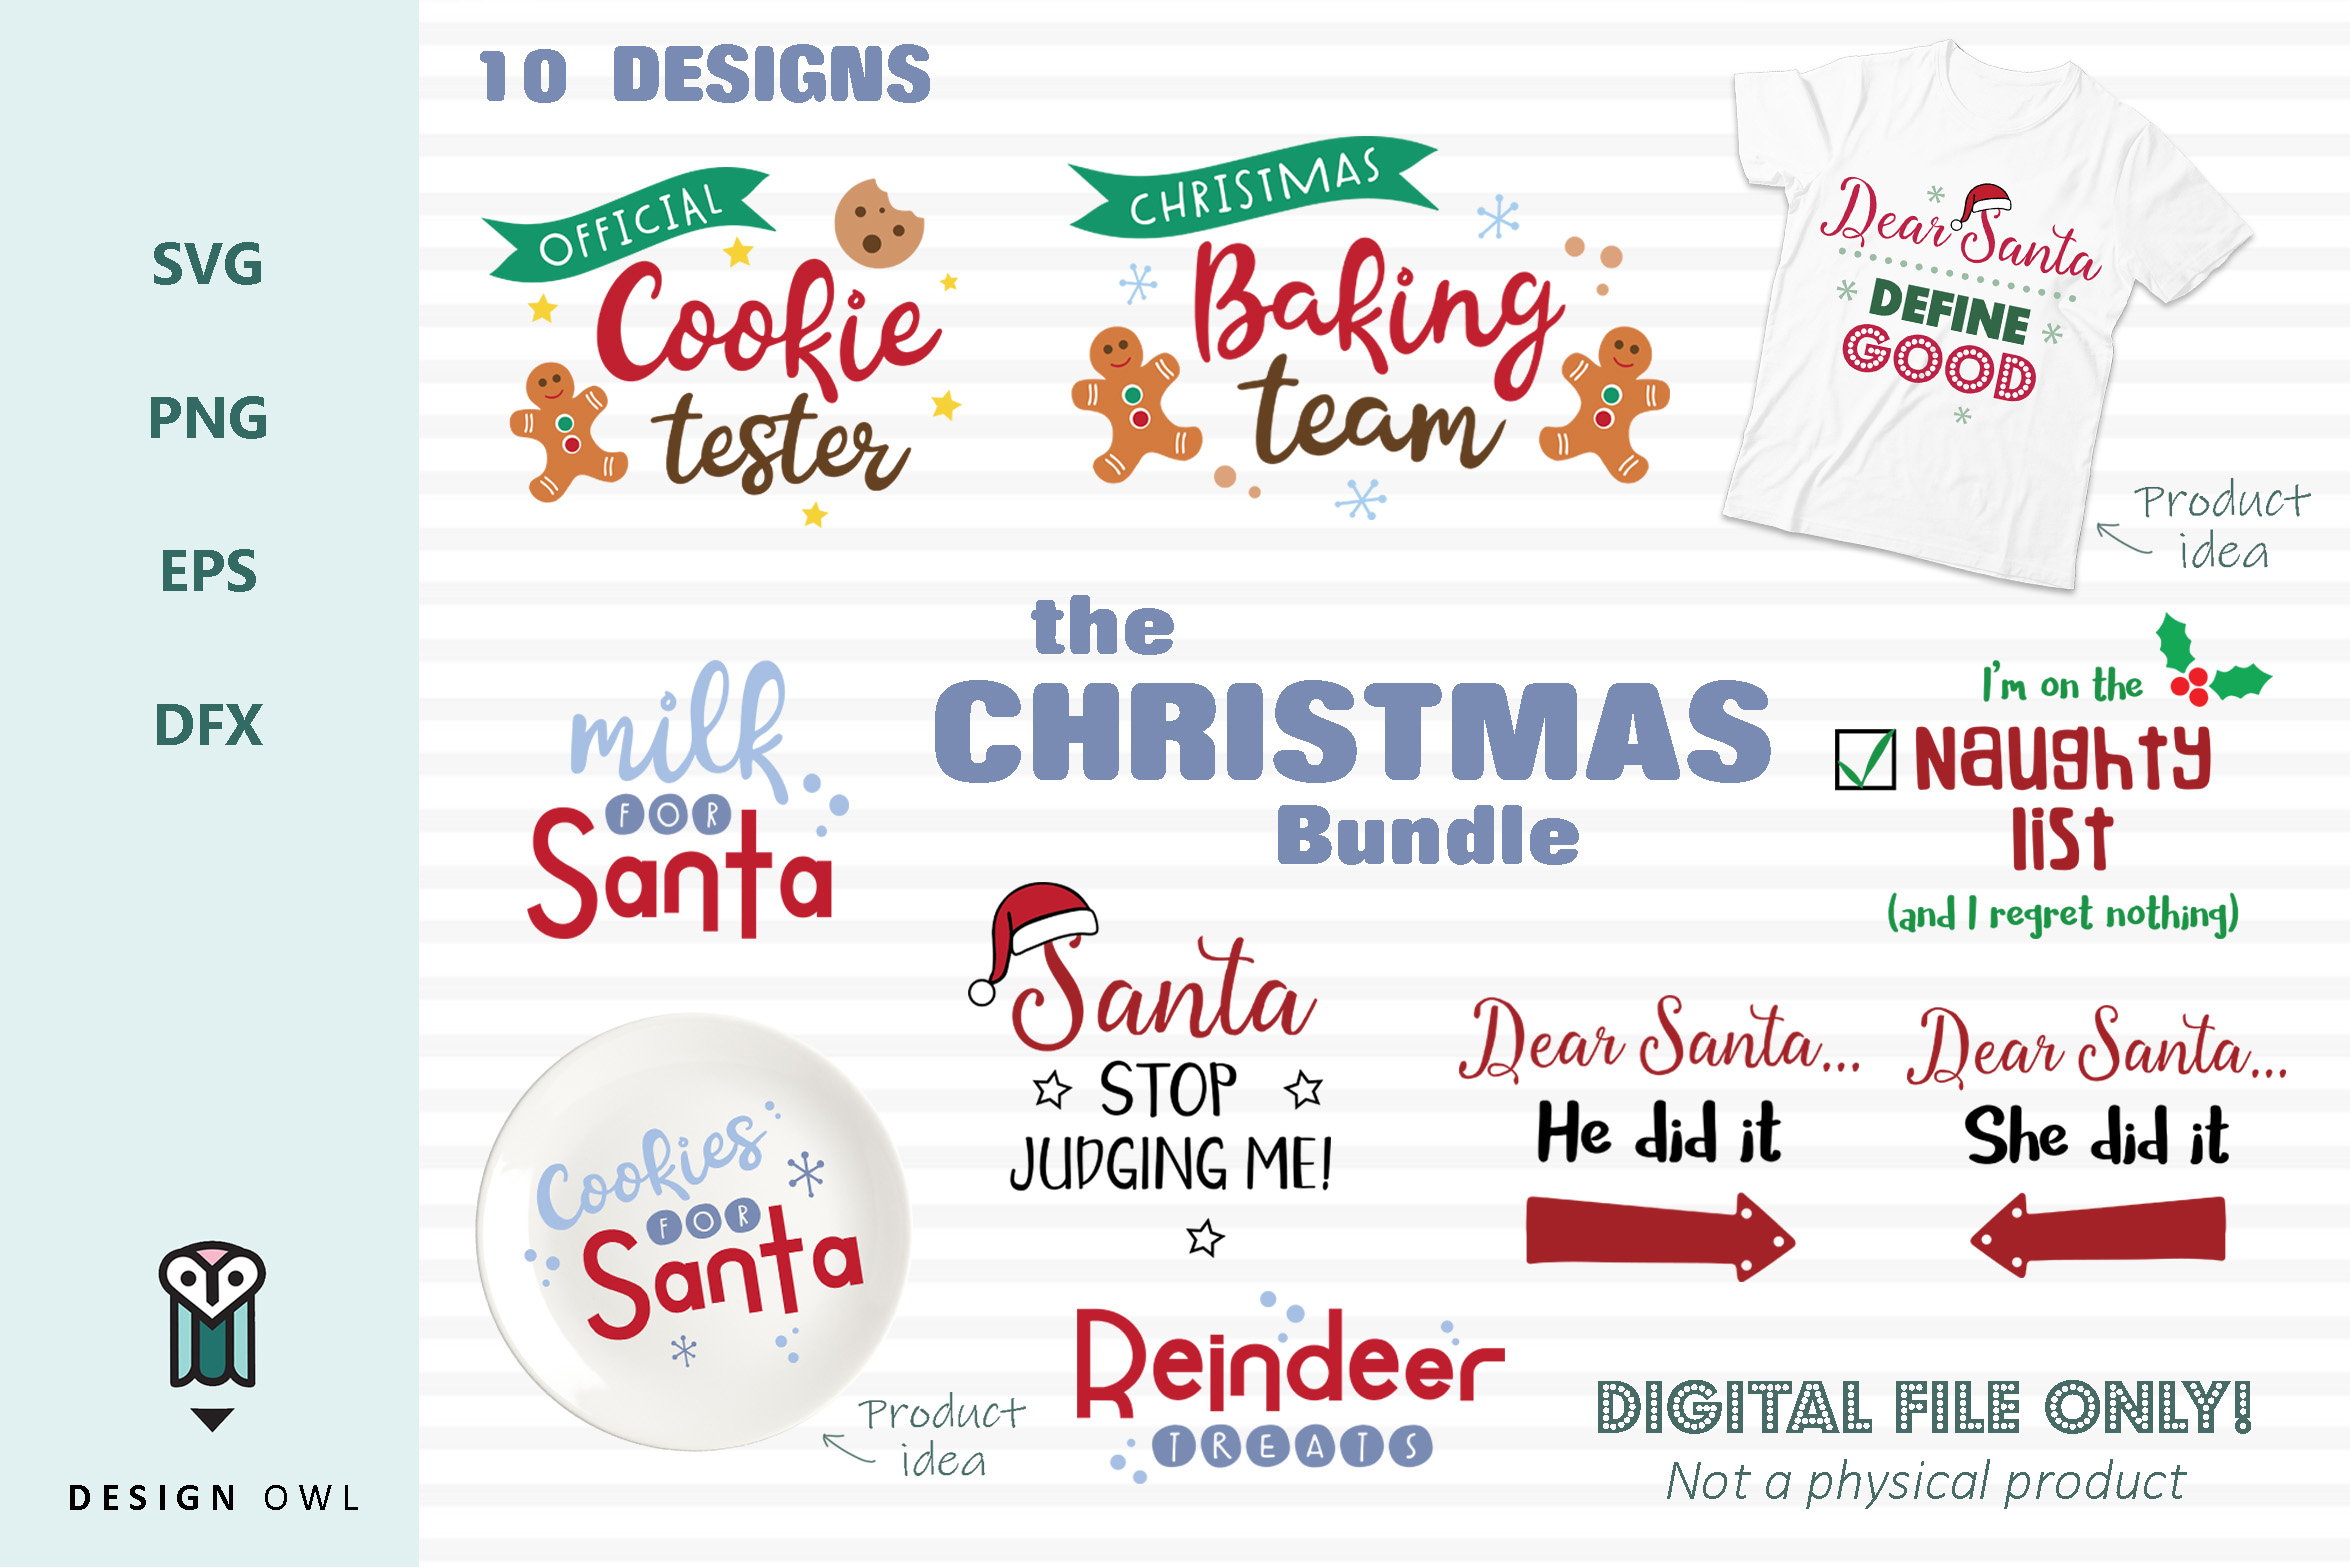 Download Free The Christmas Bundle Graphic By Design Owl Creative Fabrica for Cricut Explore, Silhouette and other cutting machines.